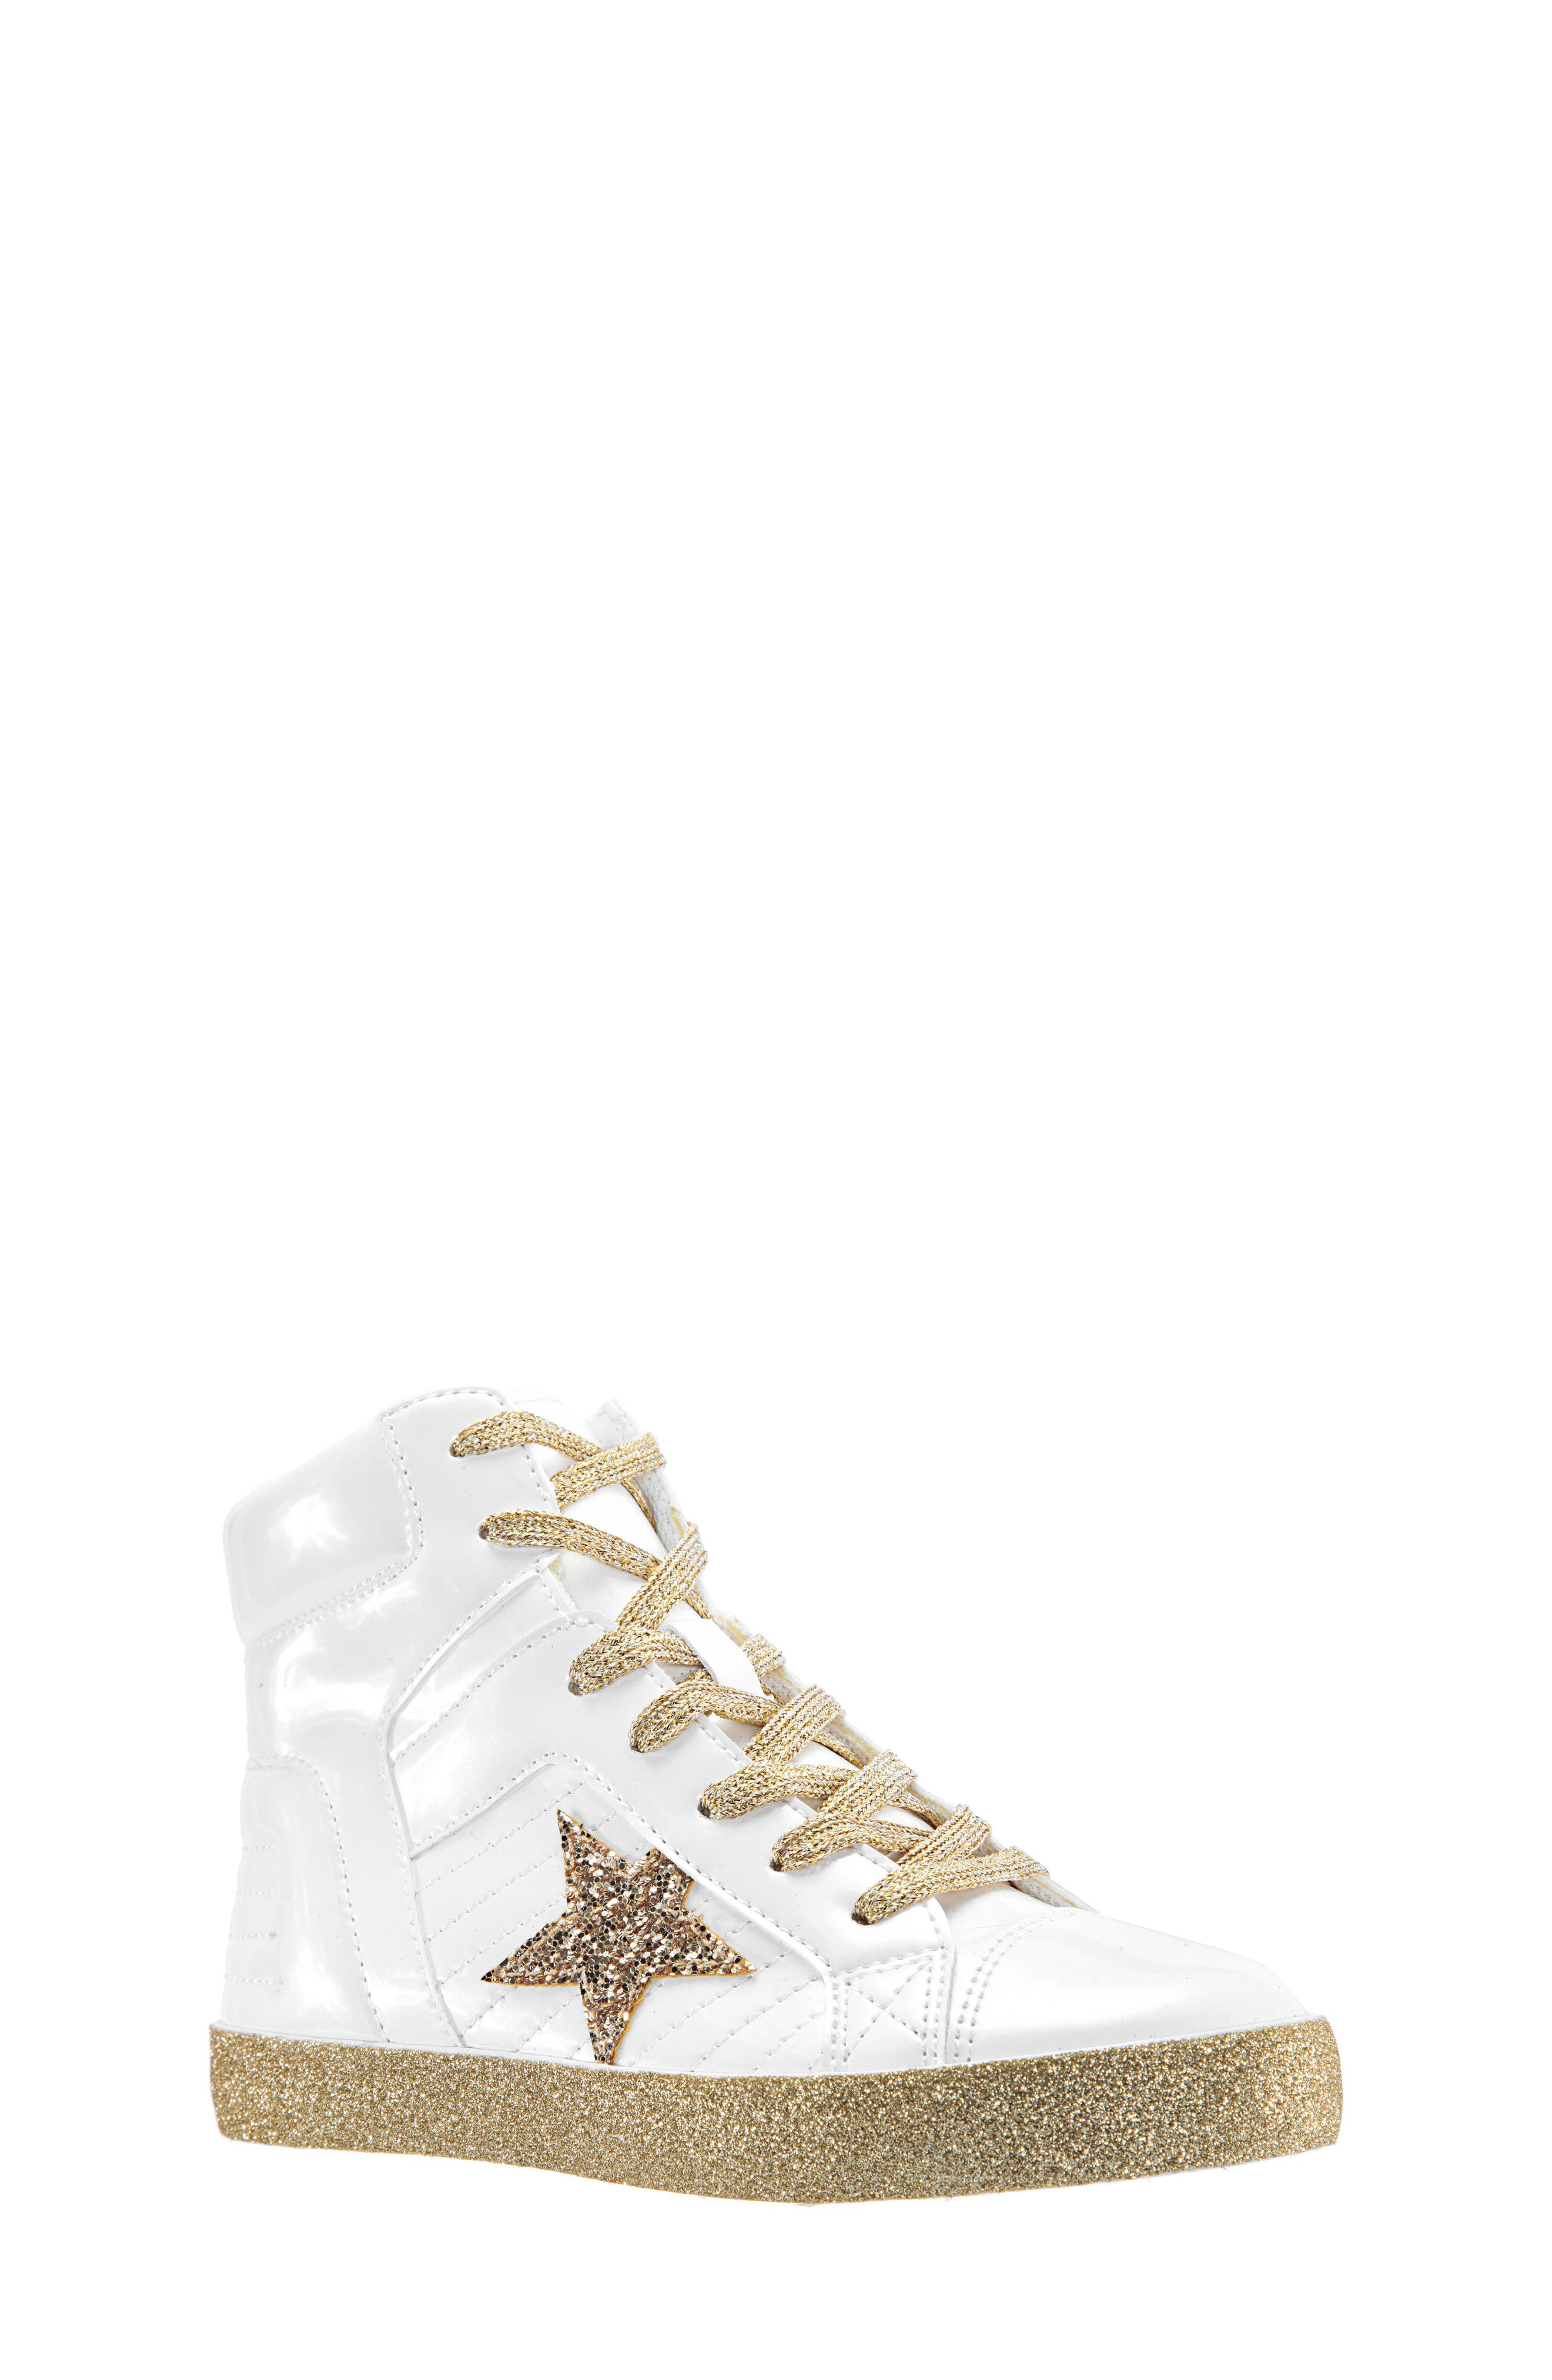 Jesy Glitter High Top Sneaker,                             Main thumbnail 1, color,                             WHITE PEARLIZED PATENT